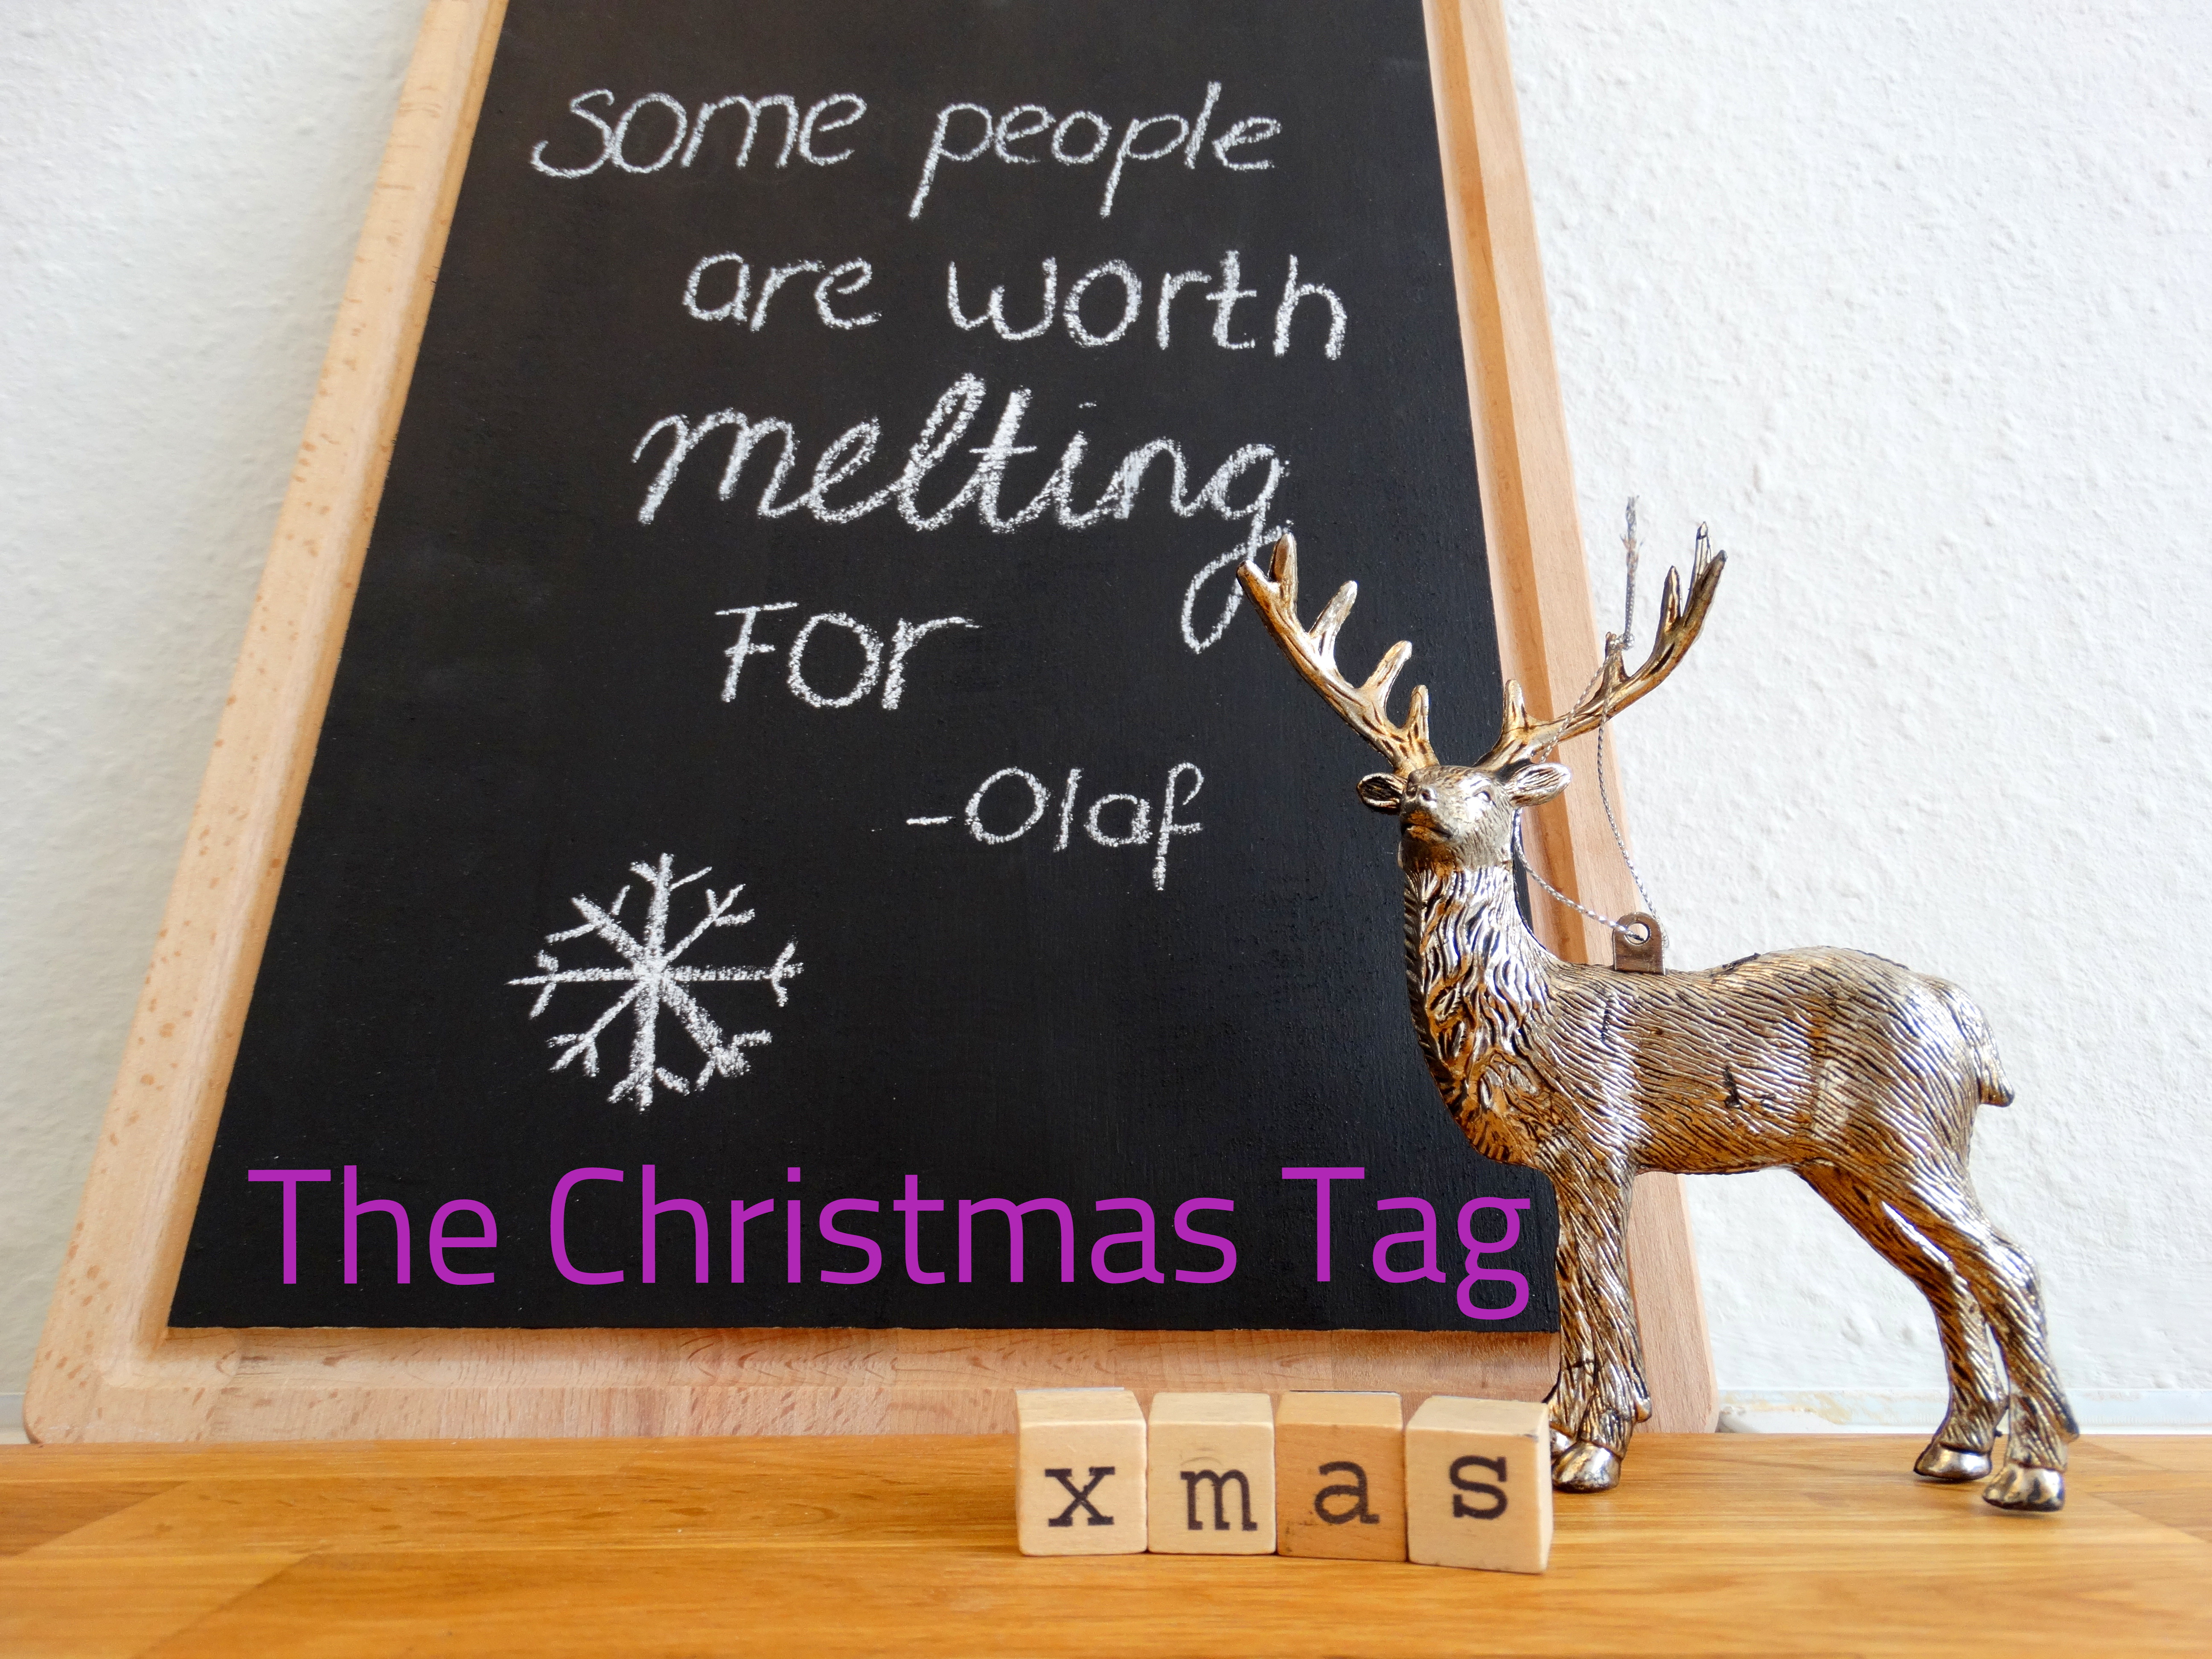 Foute Kersttrui Olaf.The Christmas Tag